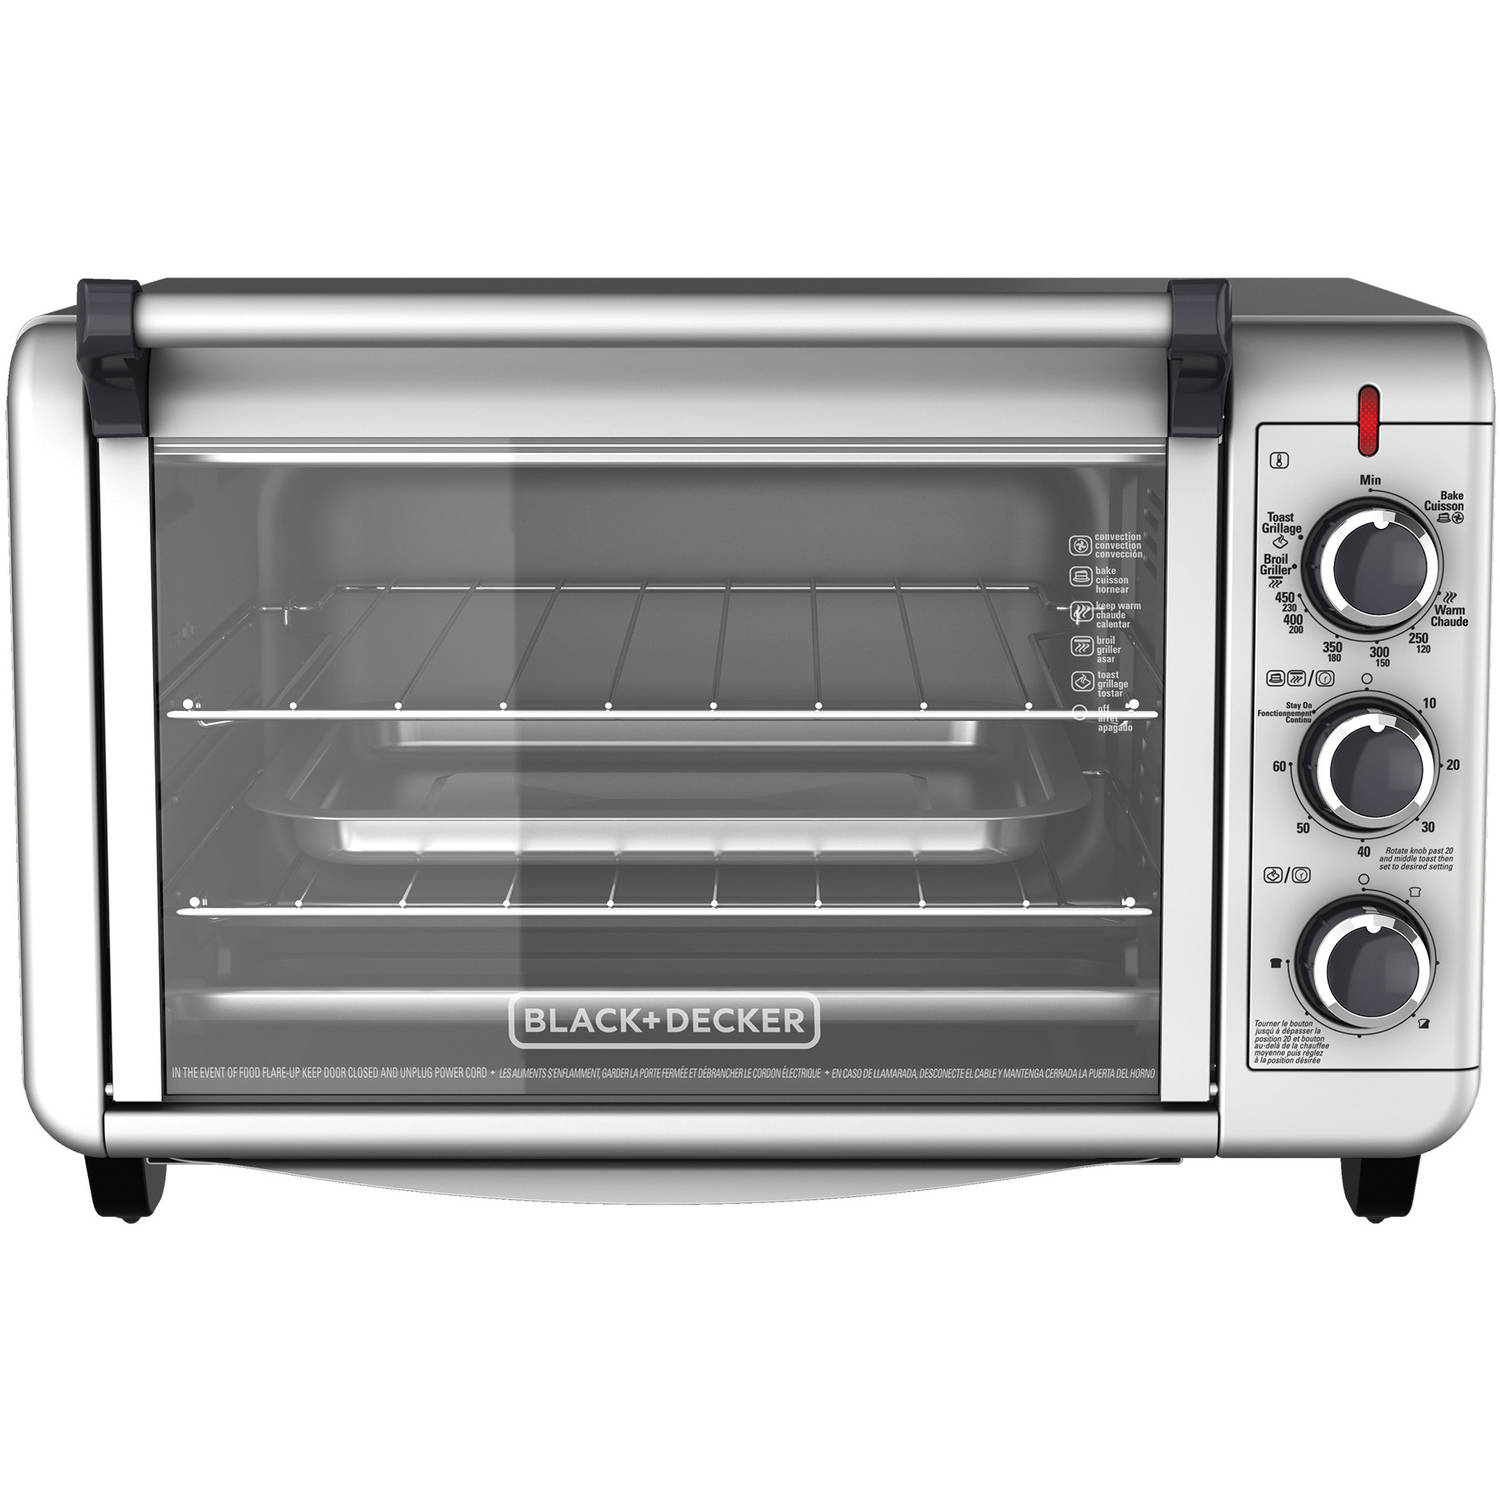 BLACK+DECKER 6-Slice Convection Countertop Toaster Oven, Silver, TO3000G by Black & Decker